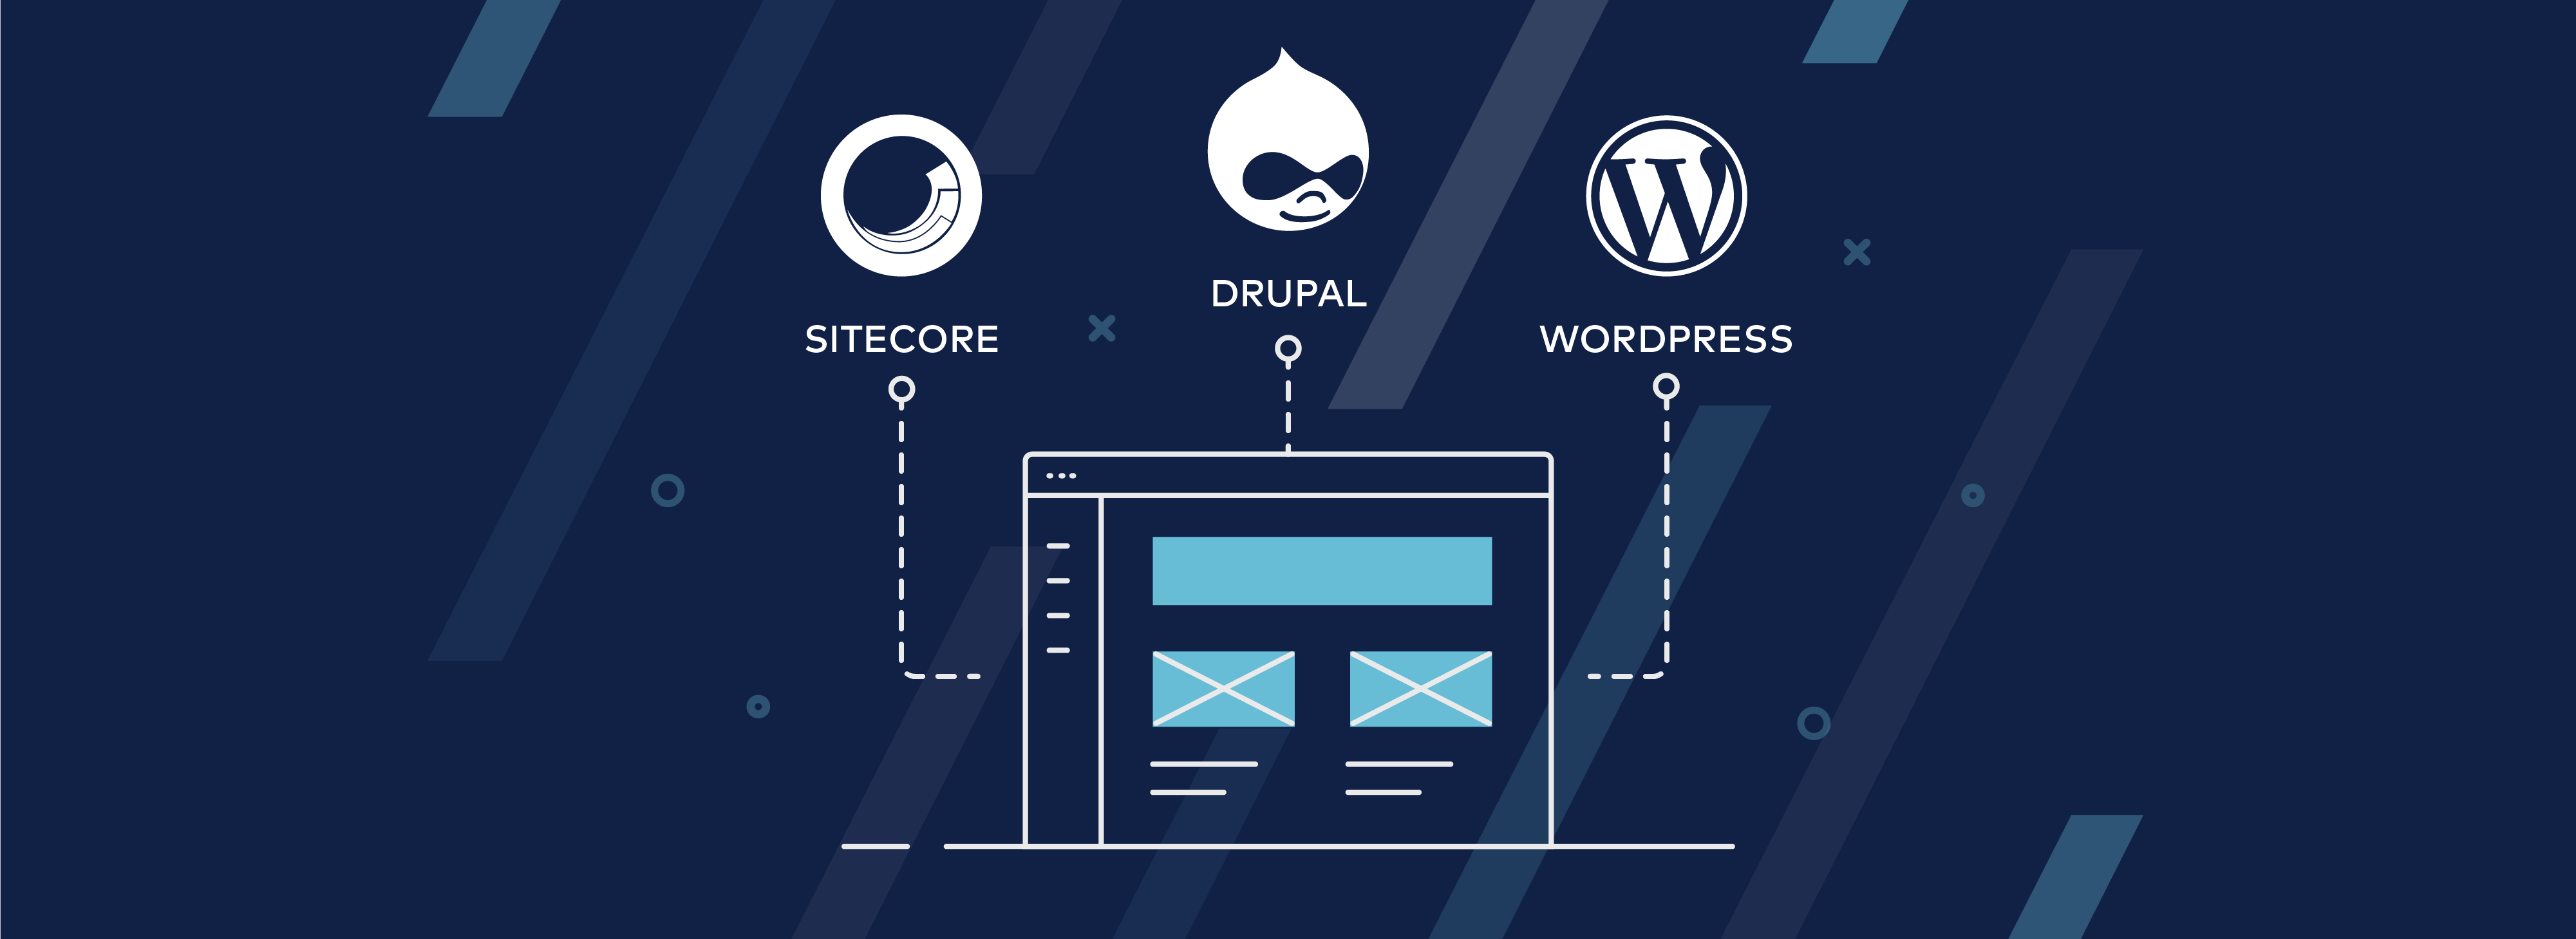 Header of Drupal, WordPress and Sitecore blog